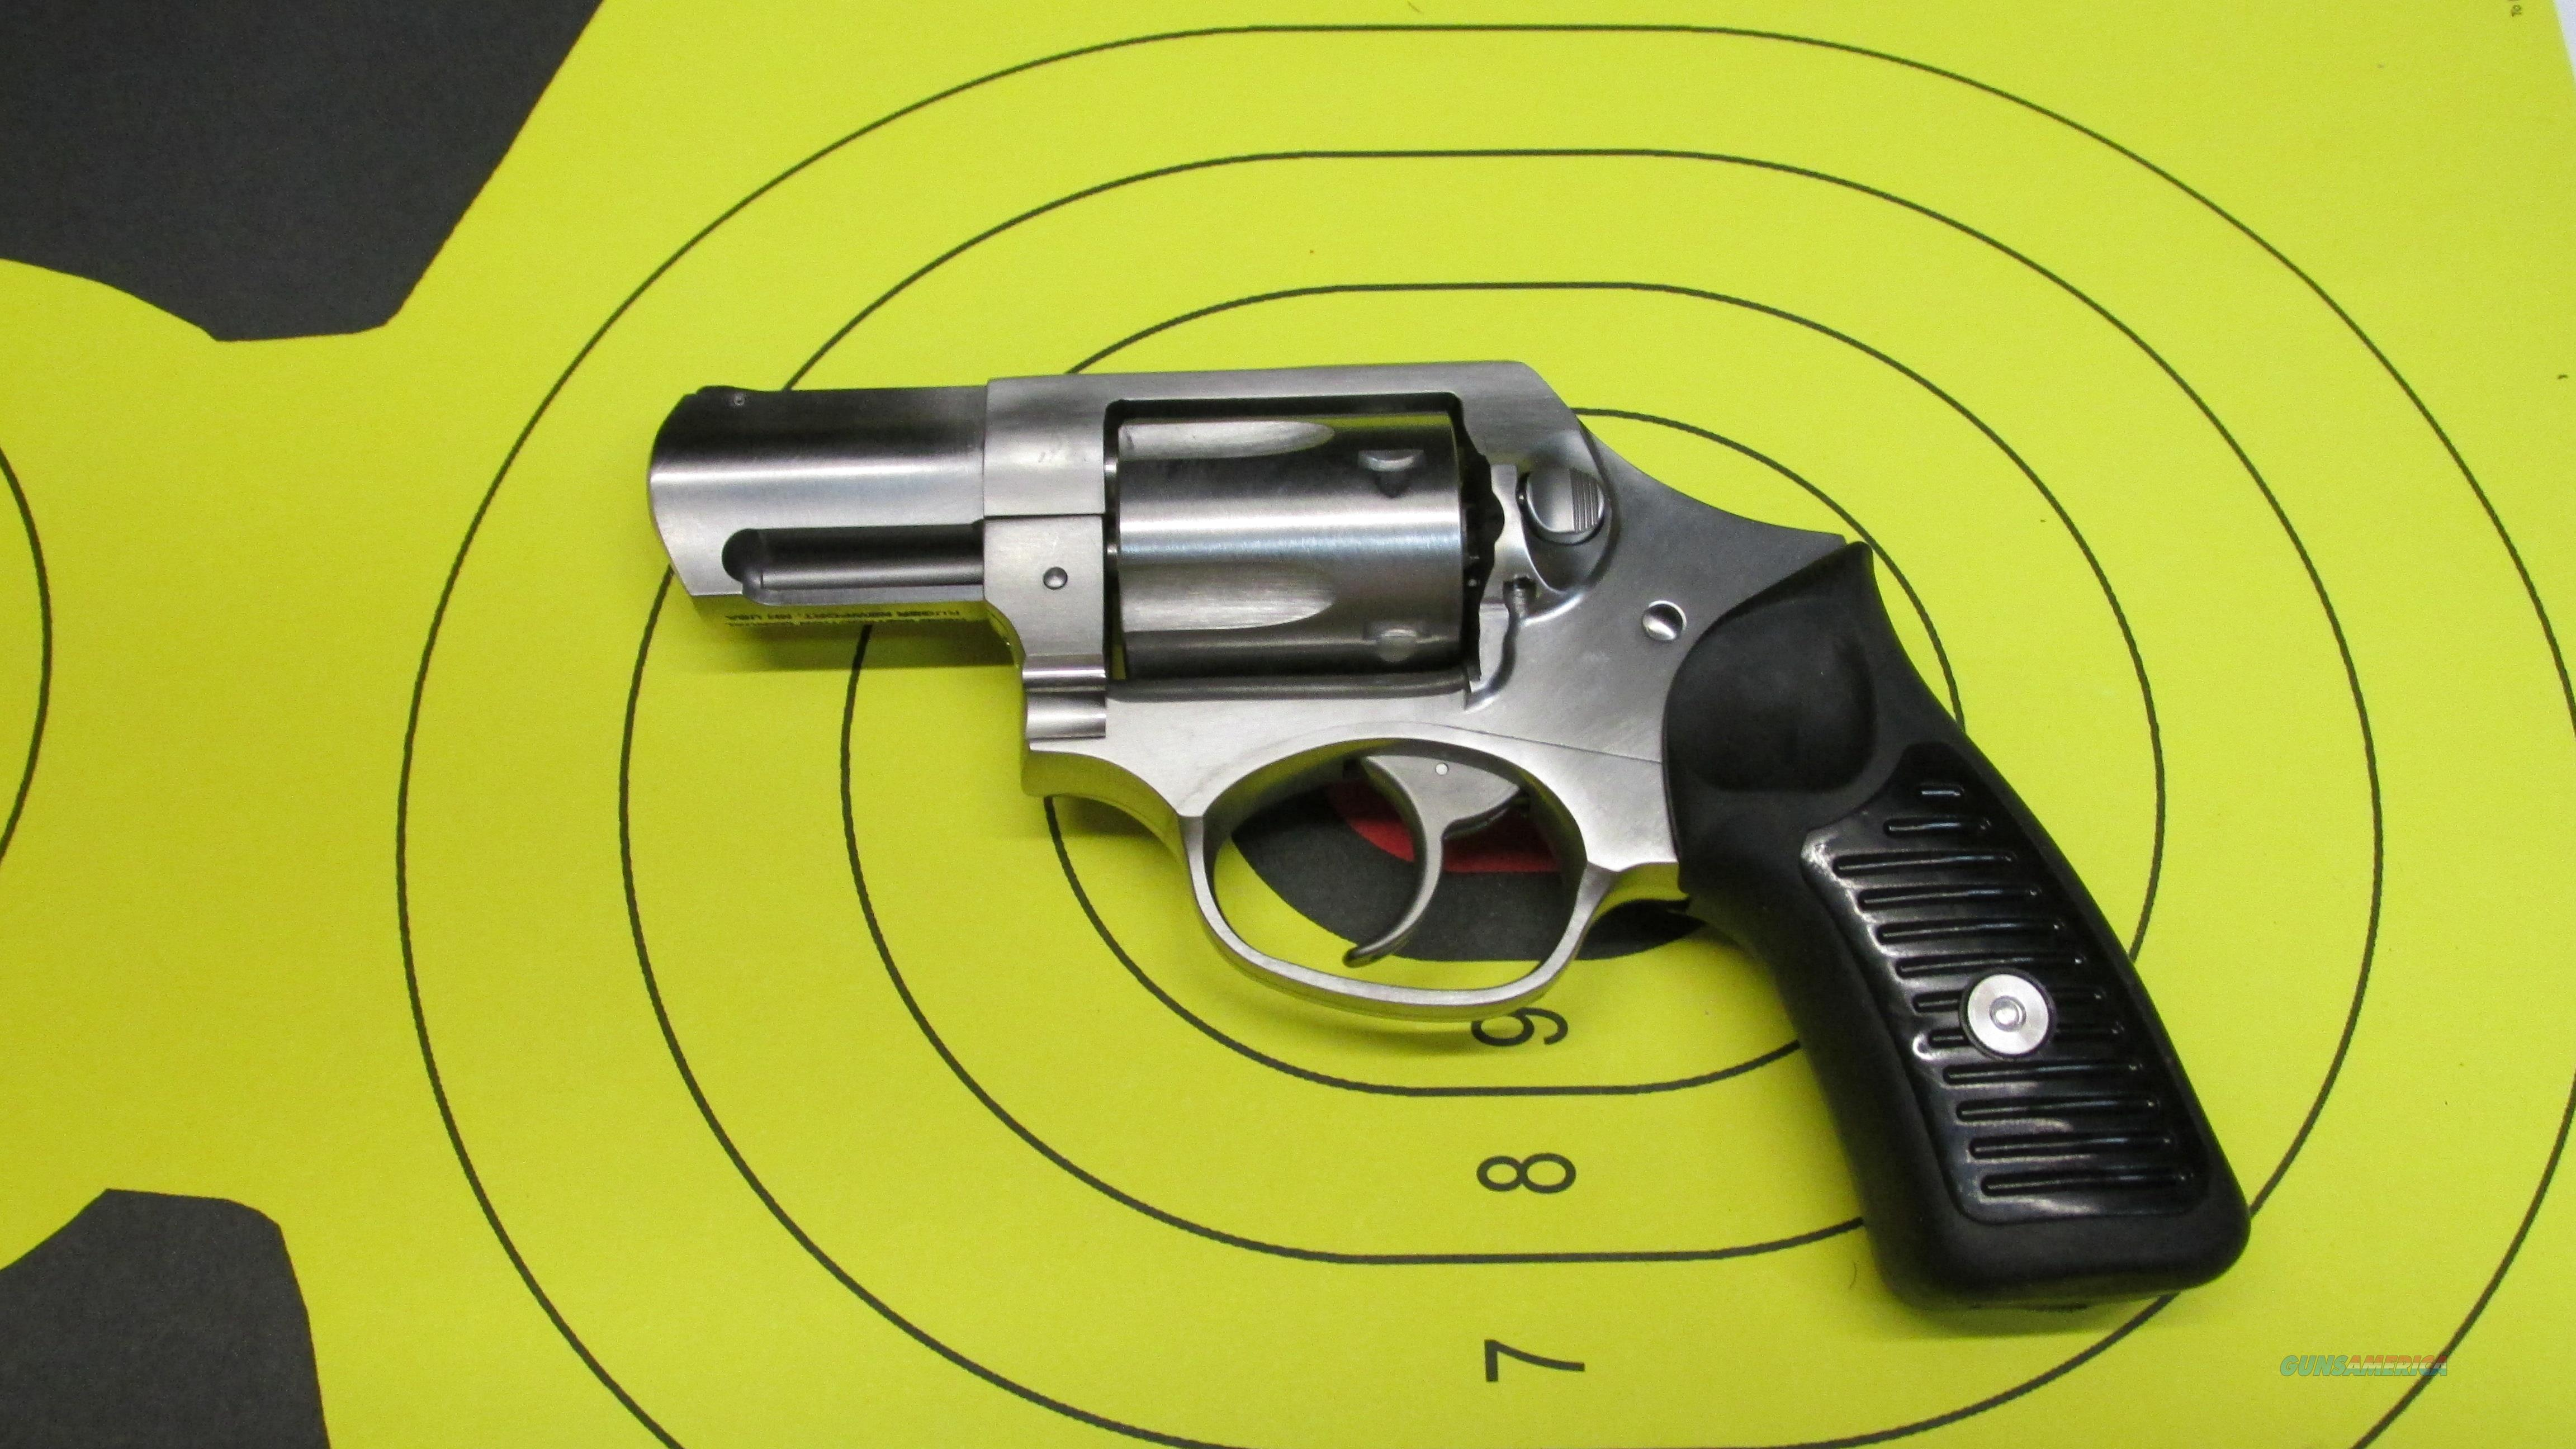 "RUGER SP101 .357 MAGNUM 2.25"" BARREL 5 SHOT REVOLVER  Guns > Pistols > Ruger Double Action Revolver > SP101 Type"